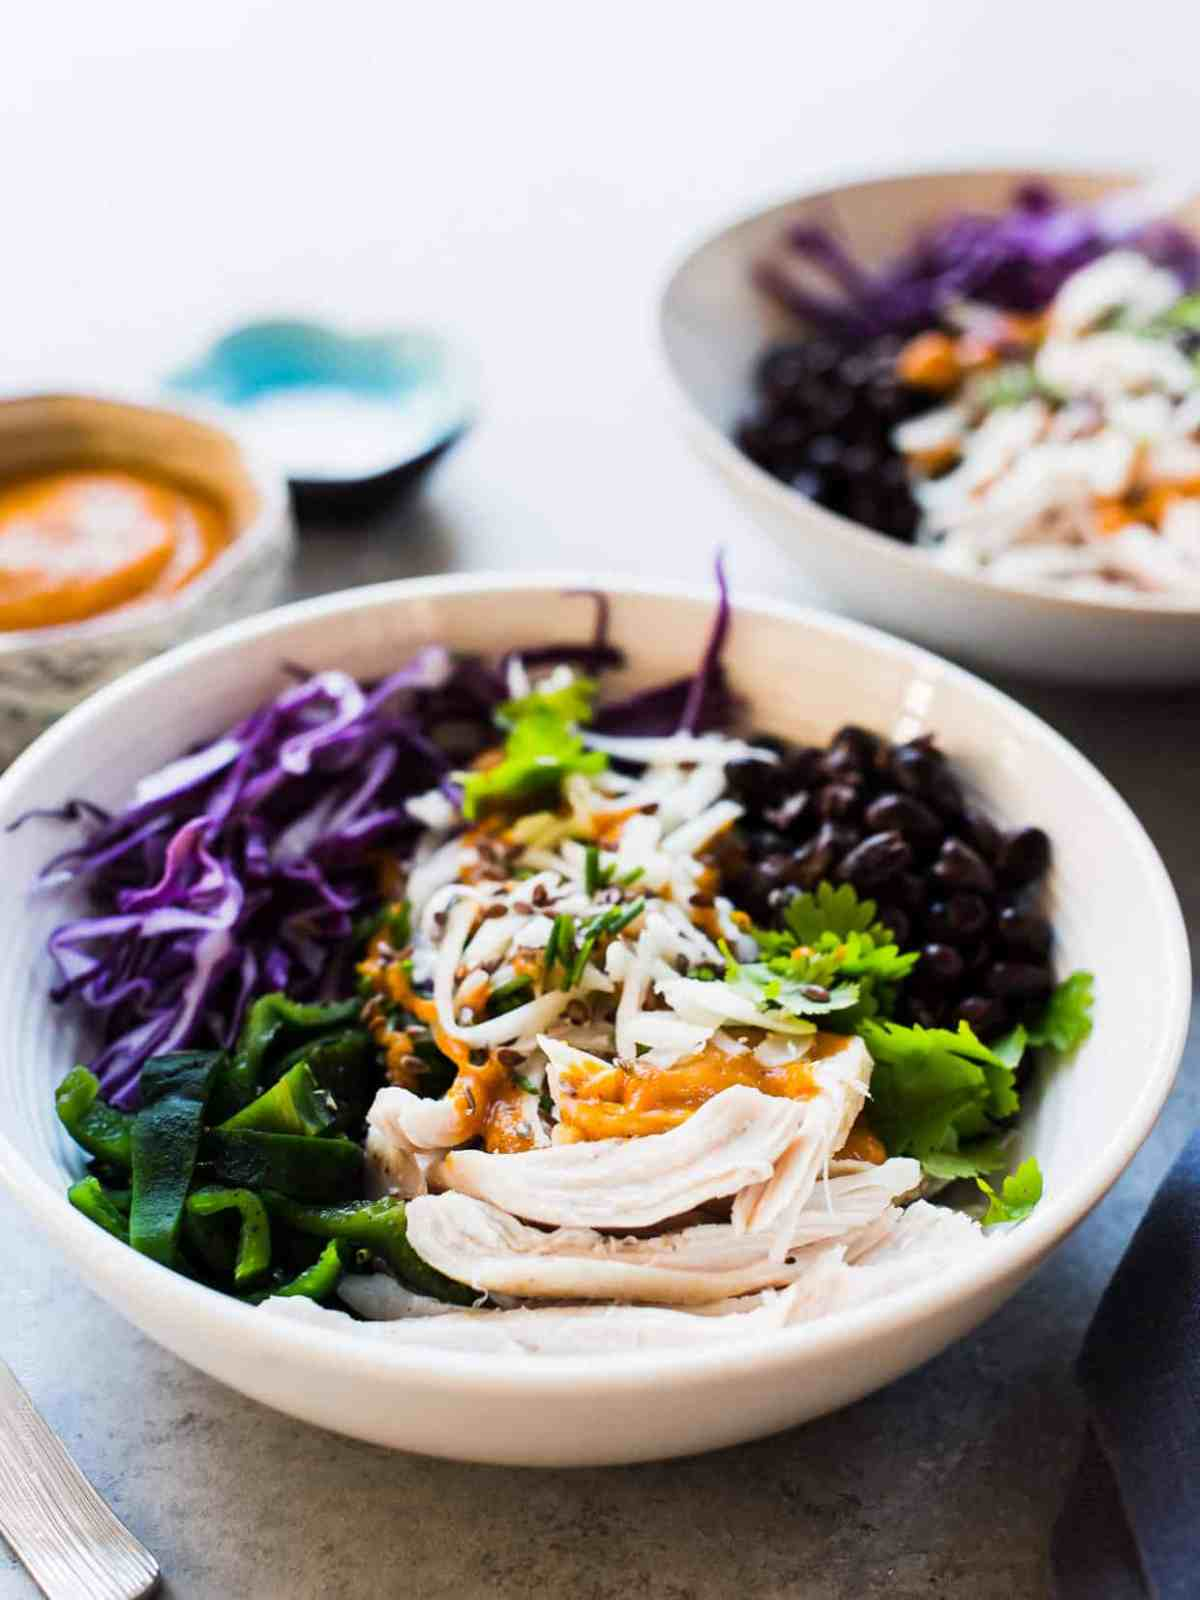 A fresh salad prepared with shredded chicken, cabbage, black beans, charred poblanos, and pumpkin-red curry vinaigrette served in a white bowl.